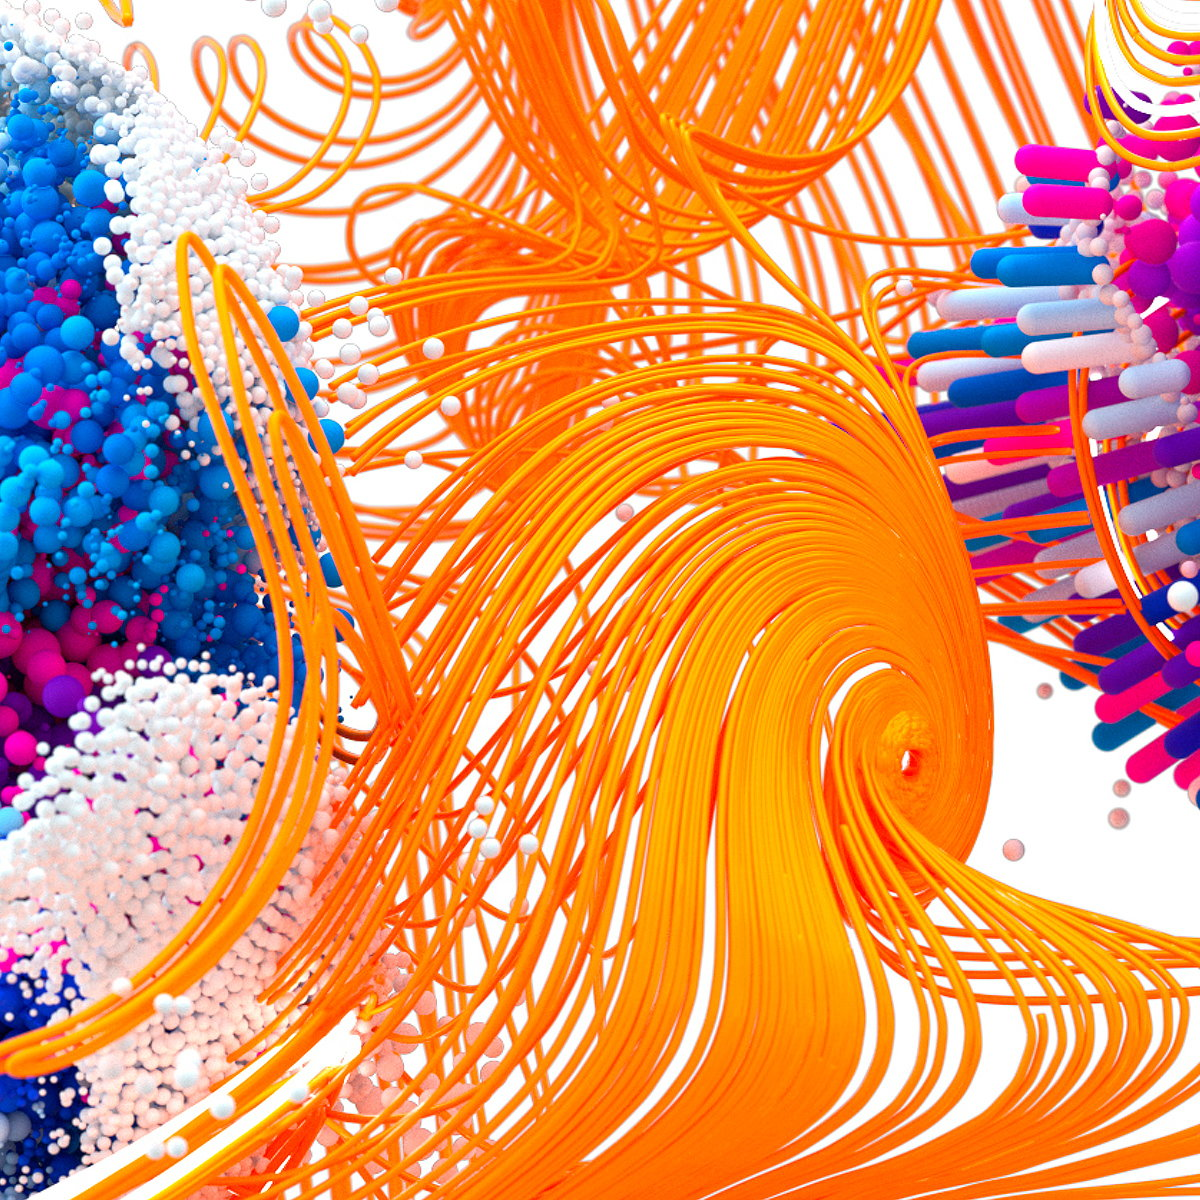 We Launch Brings GSK's Pioneering Work to Life with Data-driven Artwork